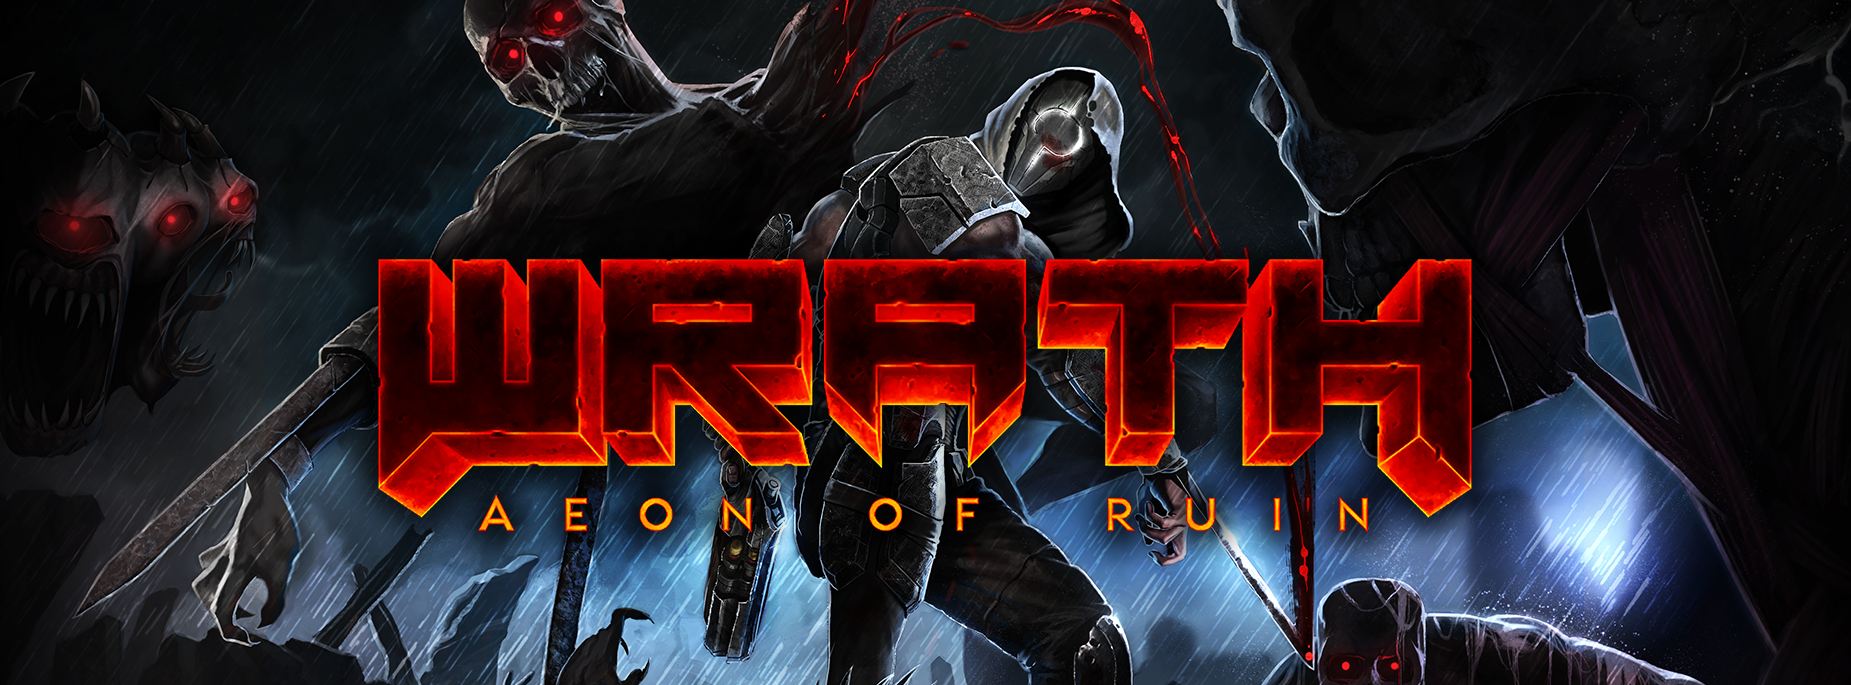 WRATH: Aeon of Ruin Announced